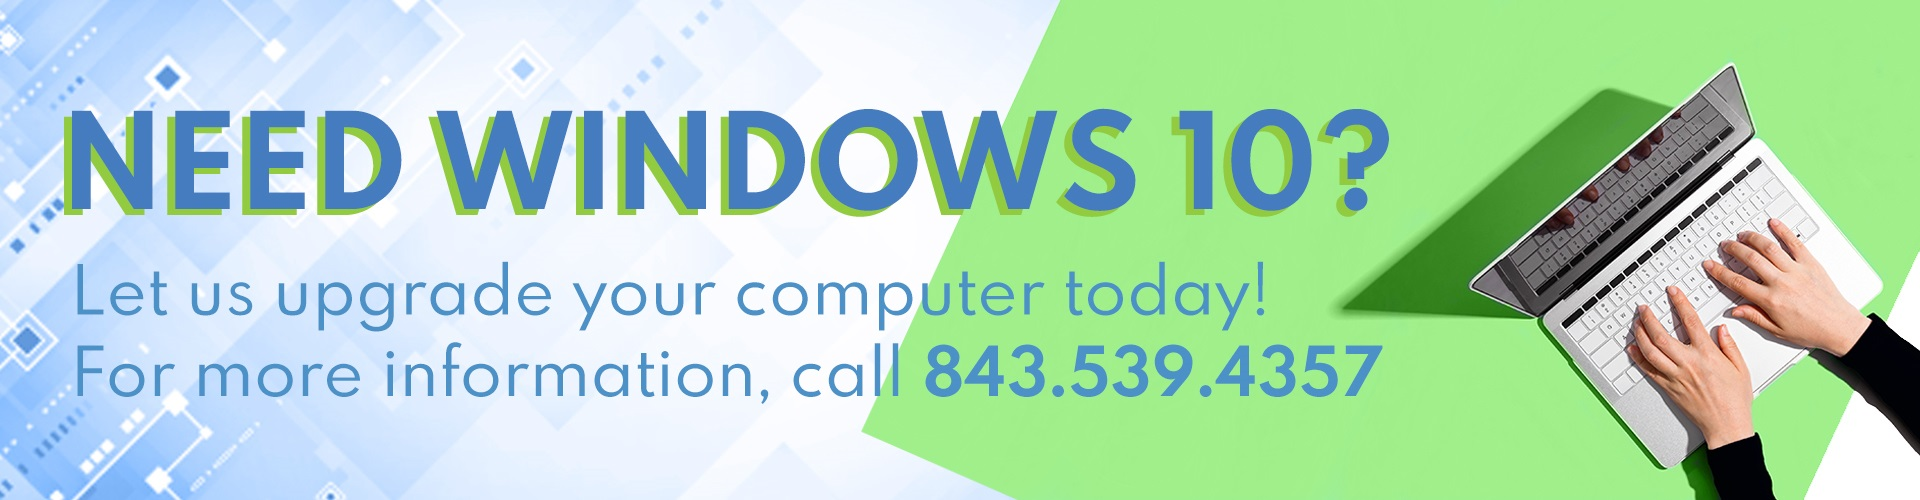 Need Windows 10?